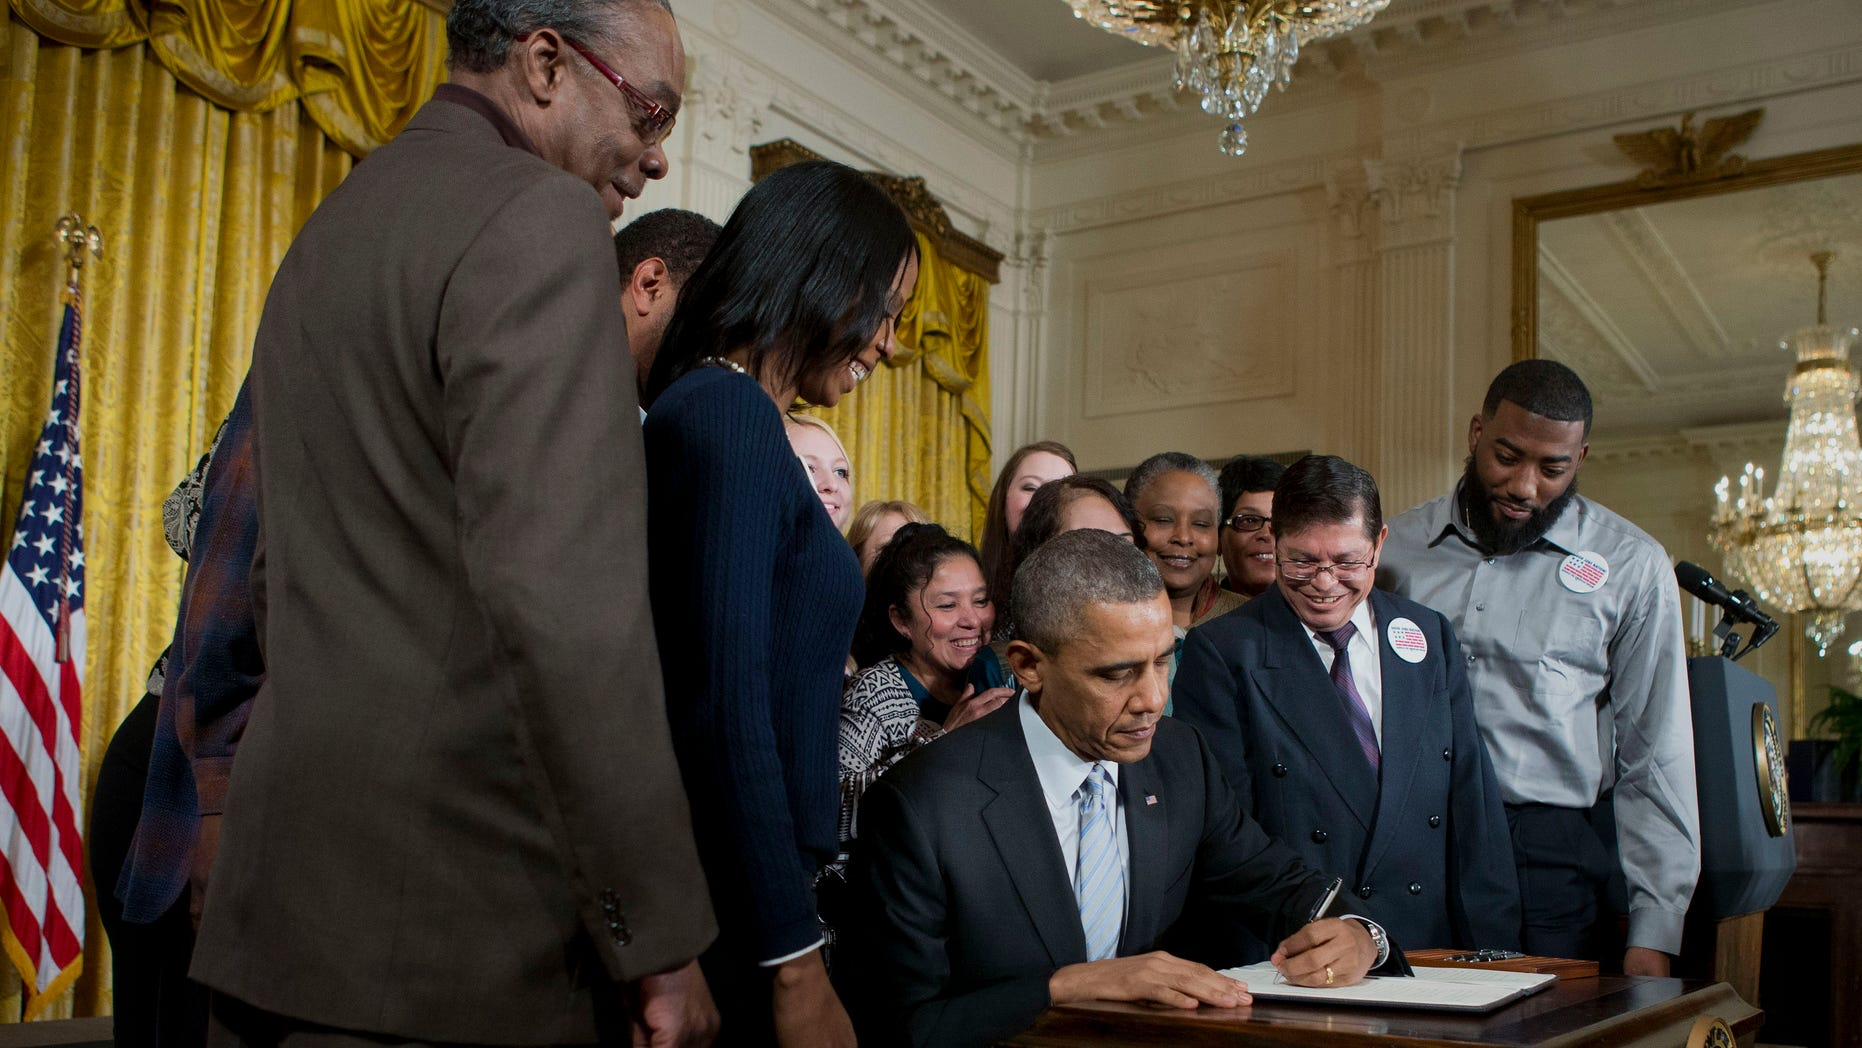 Feb. 12. 2014: President Obama, surrounded by workers, signs an executive order to raise the minimum wage for federal contract workers.